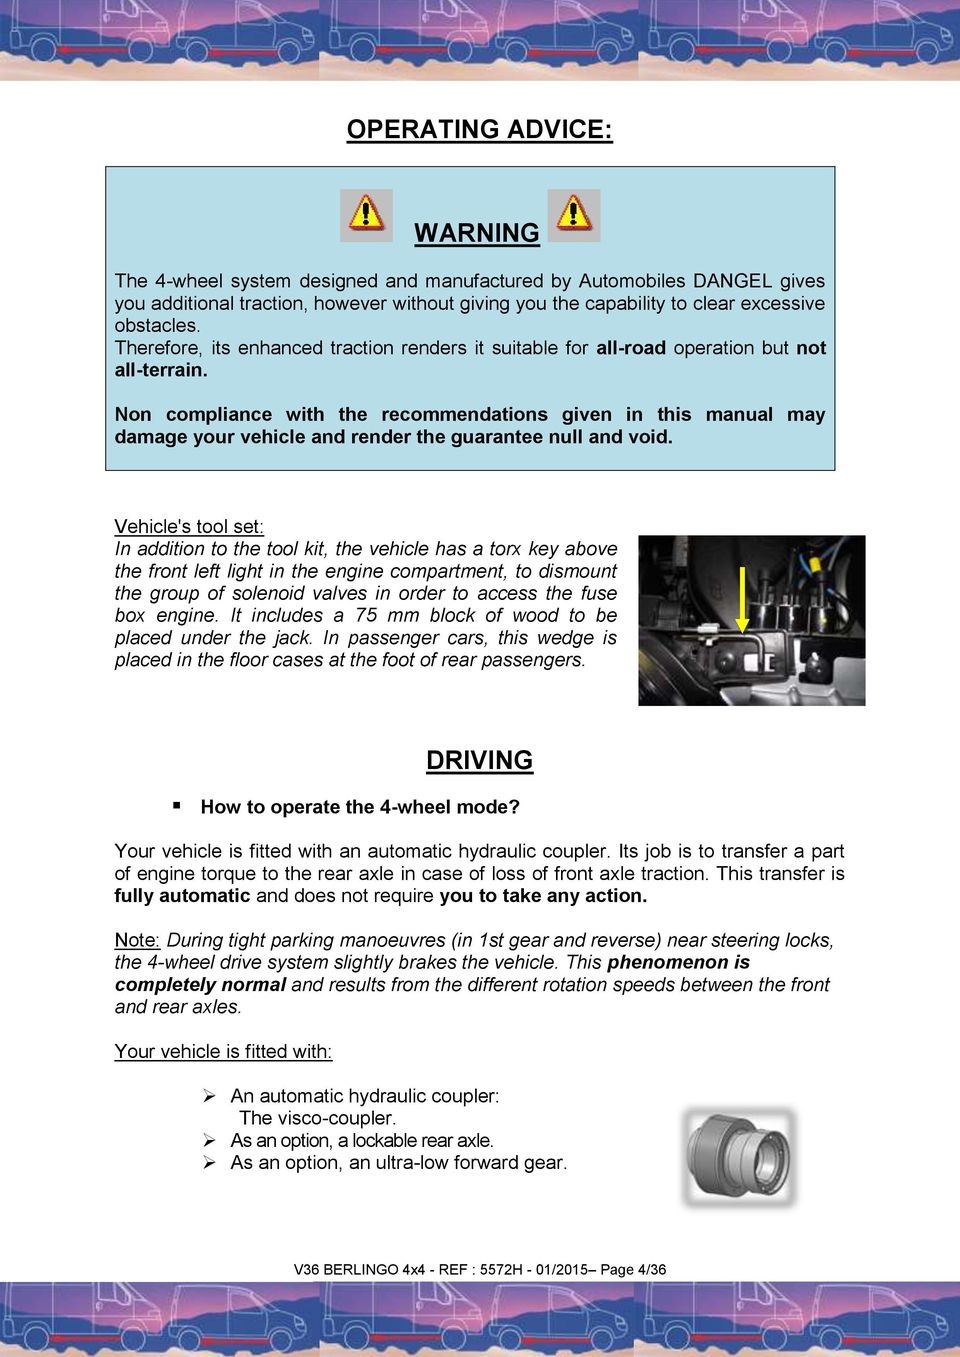 Citroen Berlingo 4x4 Dangel Instructions For Use And Maintenance Wiring Diagram Forklift Van Non Compliance With The Recommendations Given In This Manual May Damage Your Vehicle Render